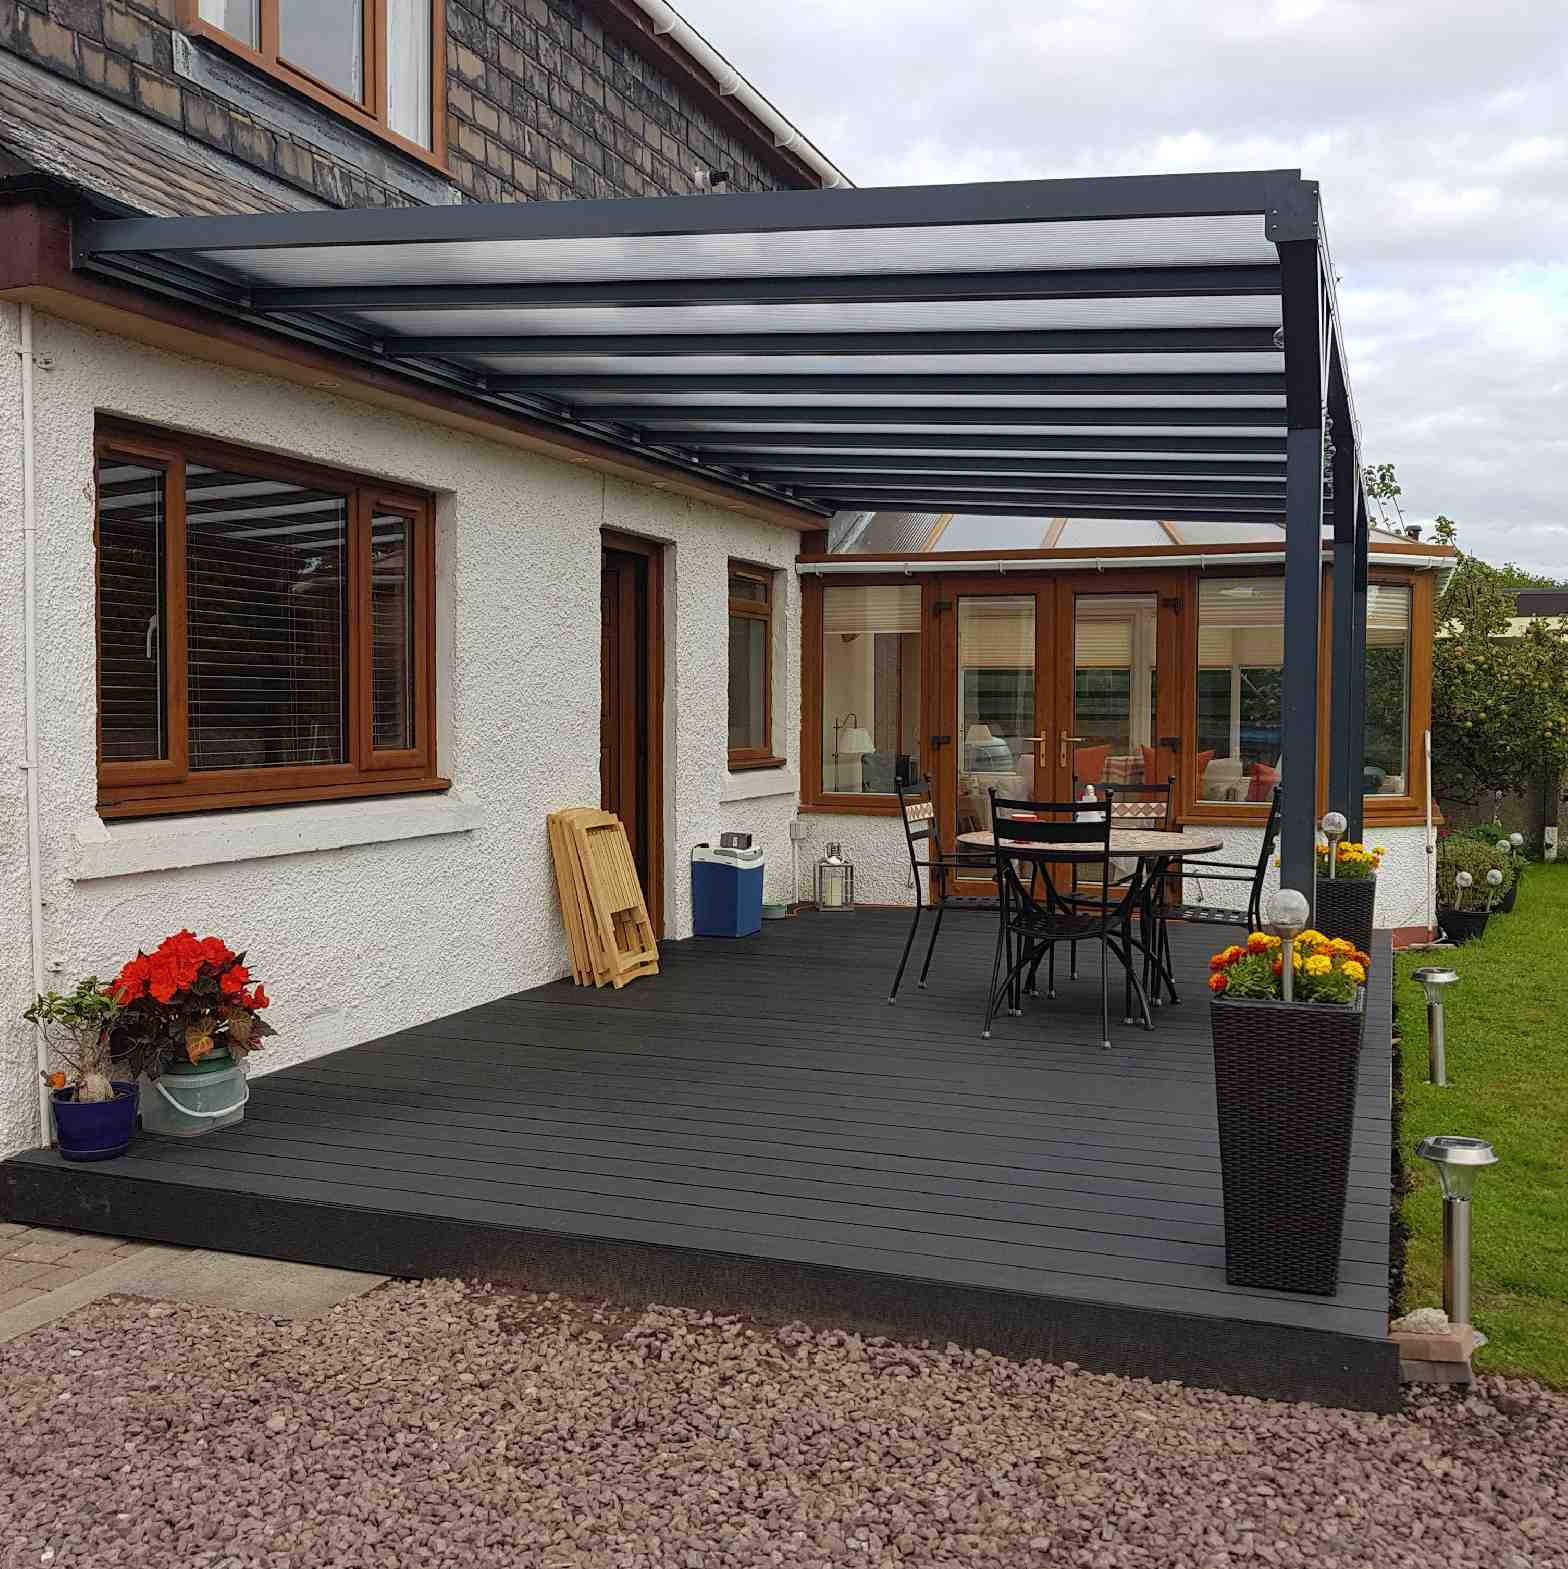 Buy Omega Verandah, Anthracite Grey, 16mm Polycarbonate Glazing - 6.3m (W) x 2.0m (P), (4) Supporting Posts online today